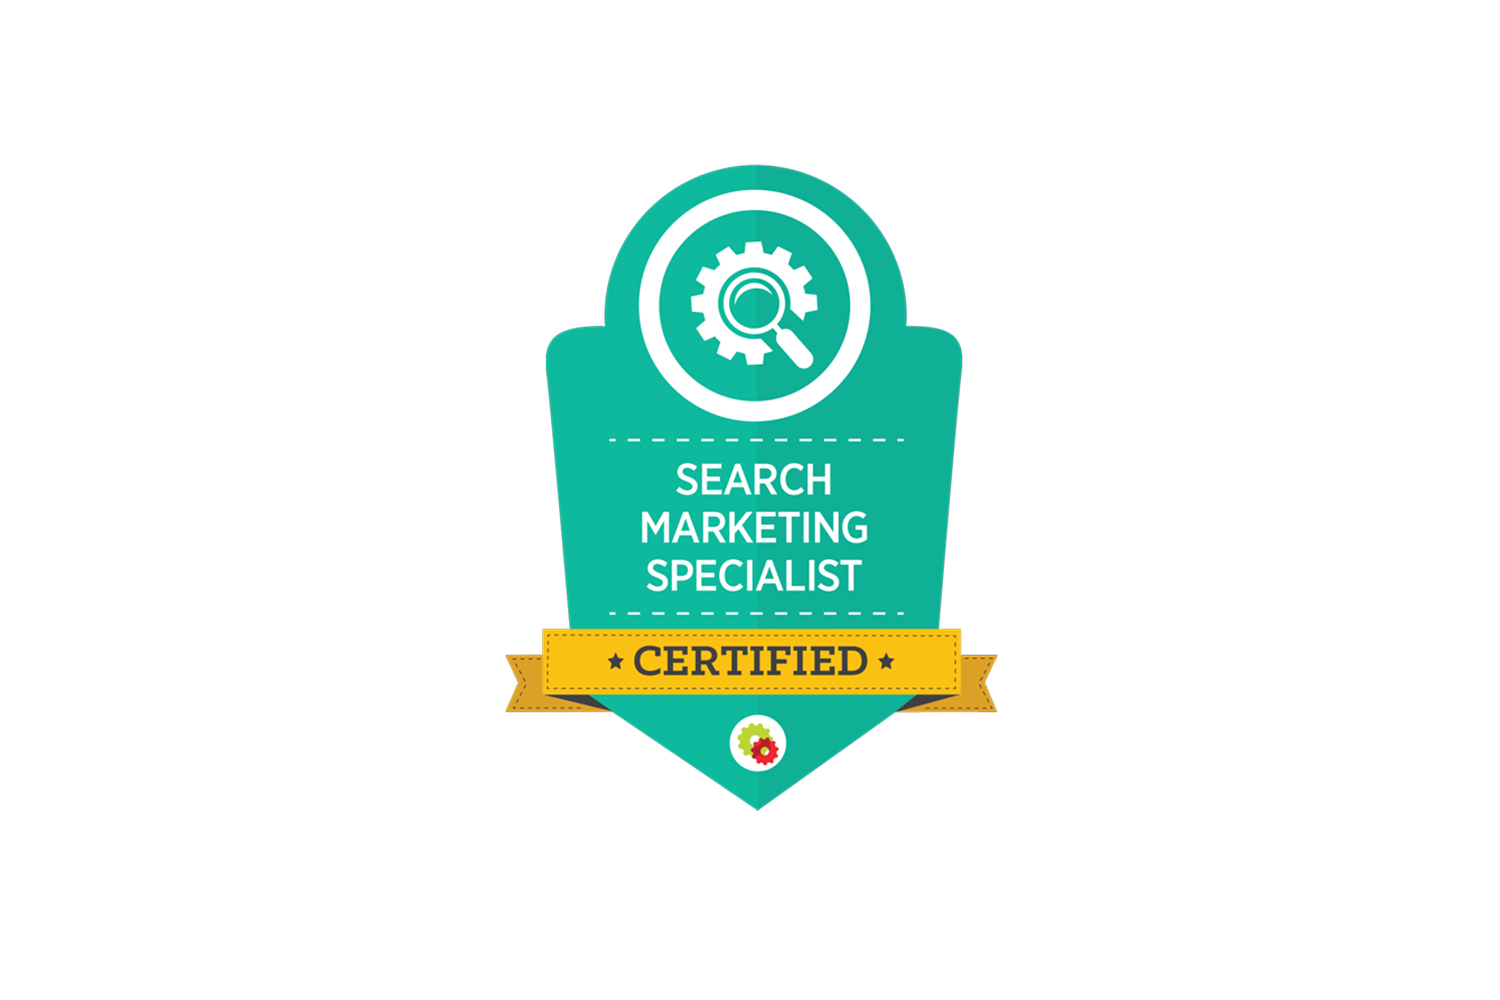 Search Marketing Specialist - Certified Search Marketing Specialists are uniquely qualified to help brands and businesses develop and execute a sustainable search marketing program. They are trained to identify and capitalize on search demand from platforms like Google, Amazon, YouTube and iTunes. The methods they have been taught are within the terms of service of these platforms.